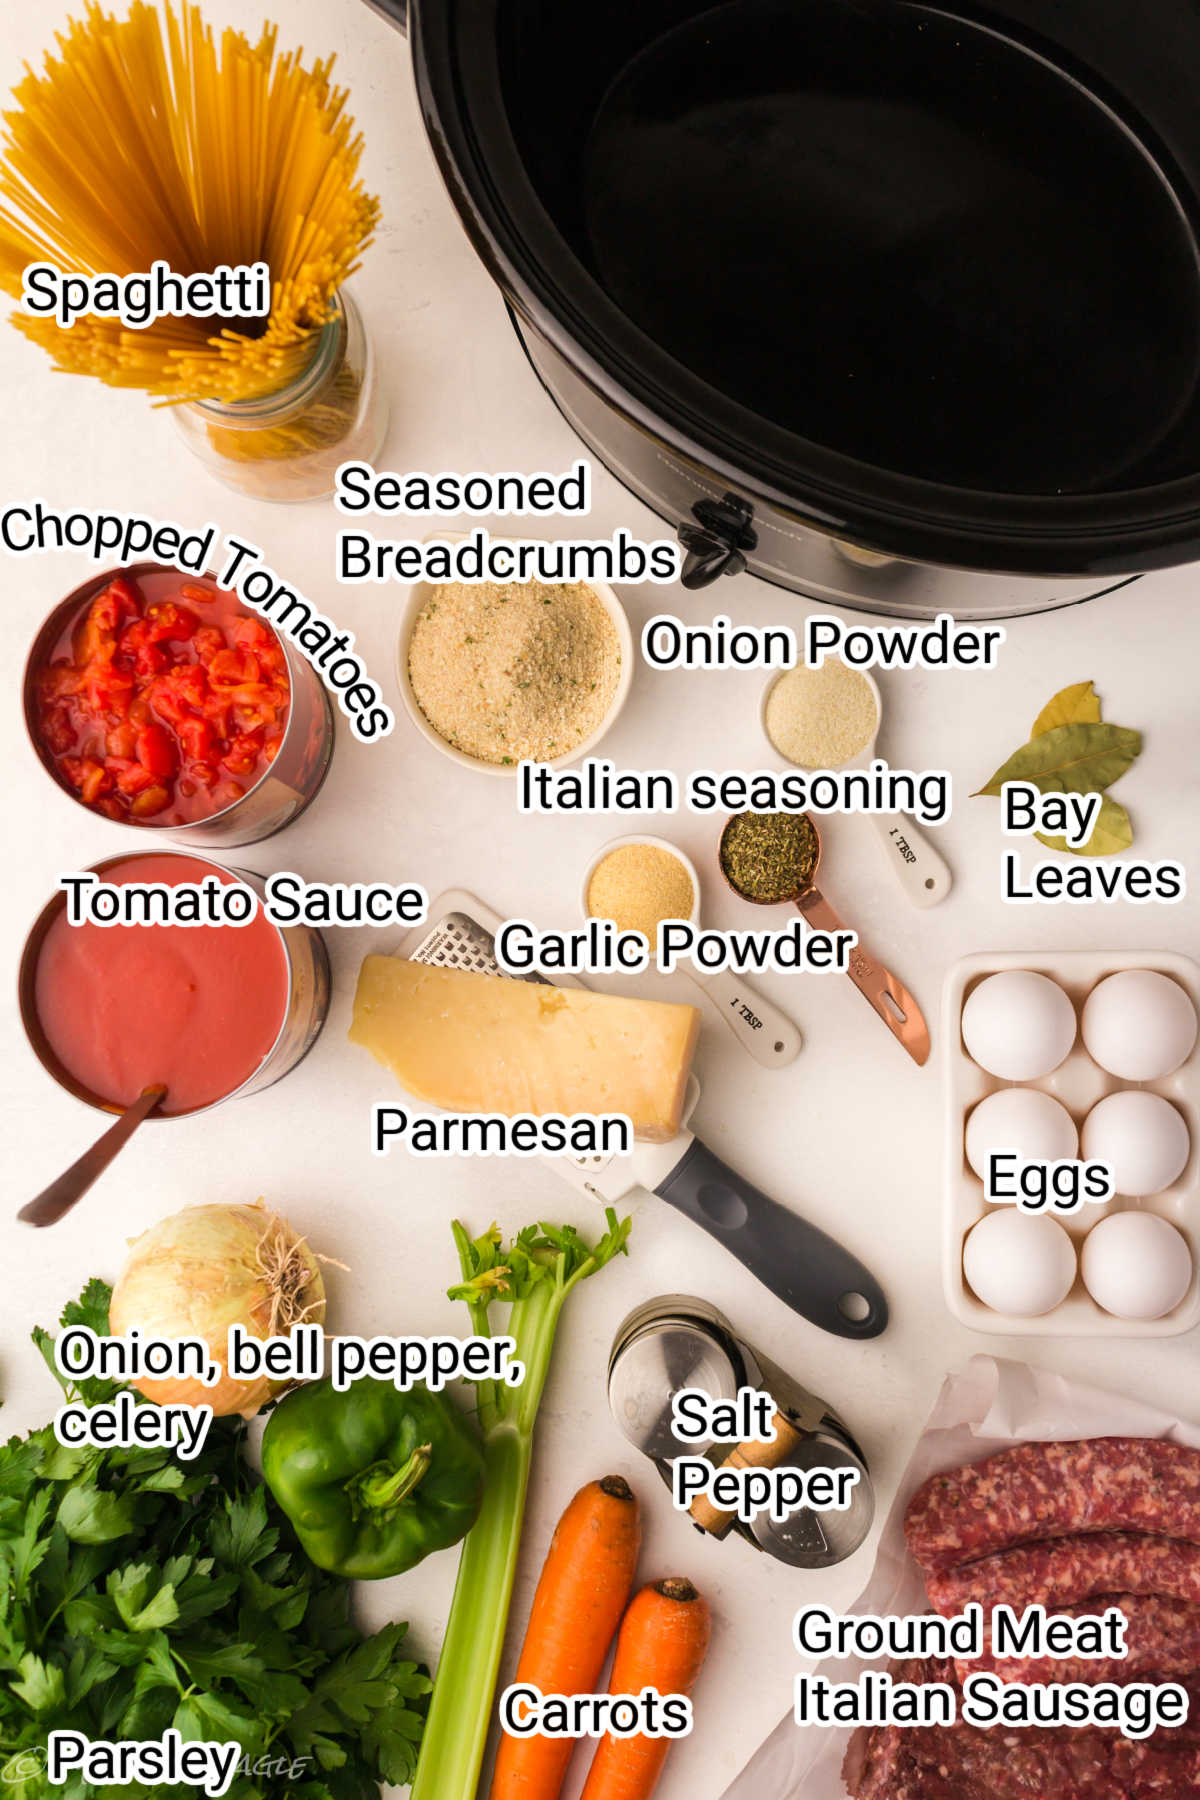 spaghetti and meatballs ingredients all laid out with the names of the ingredients overlaid